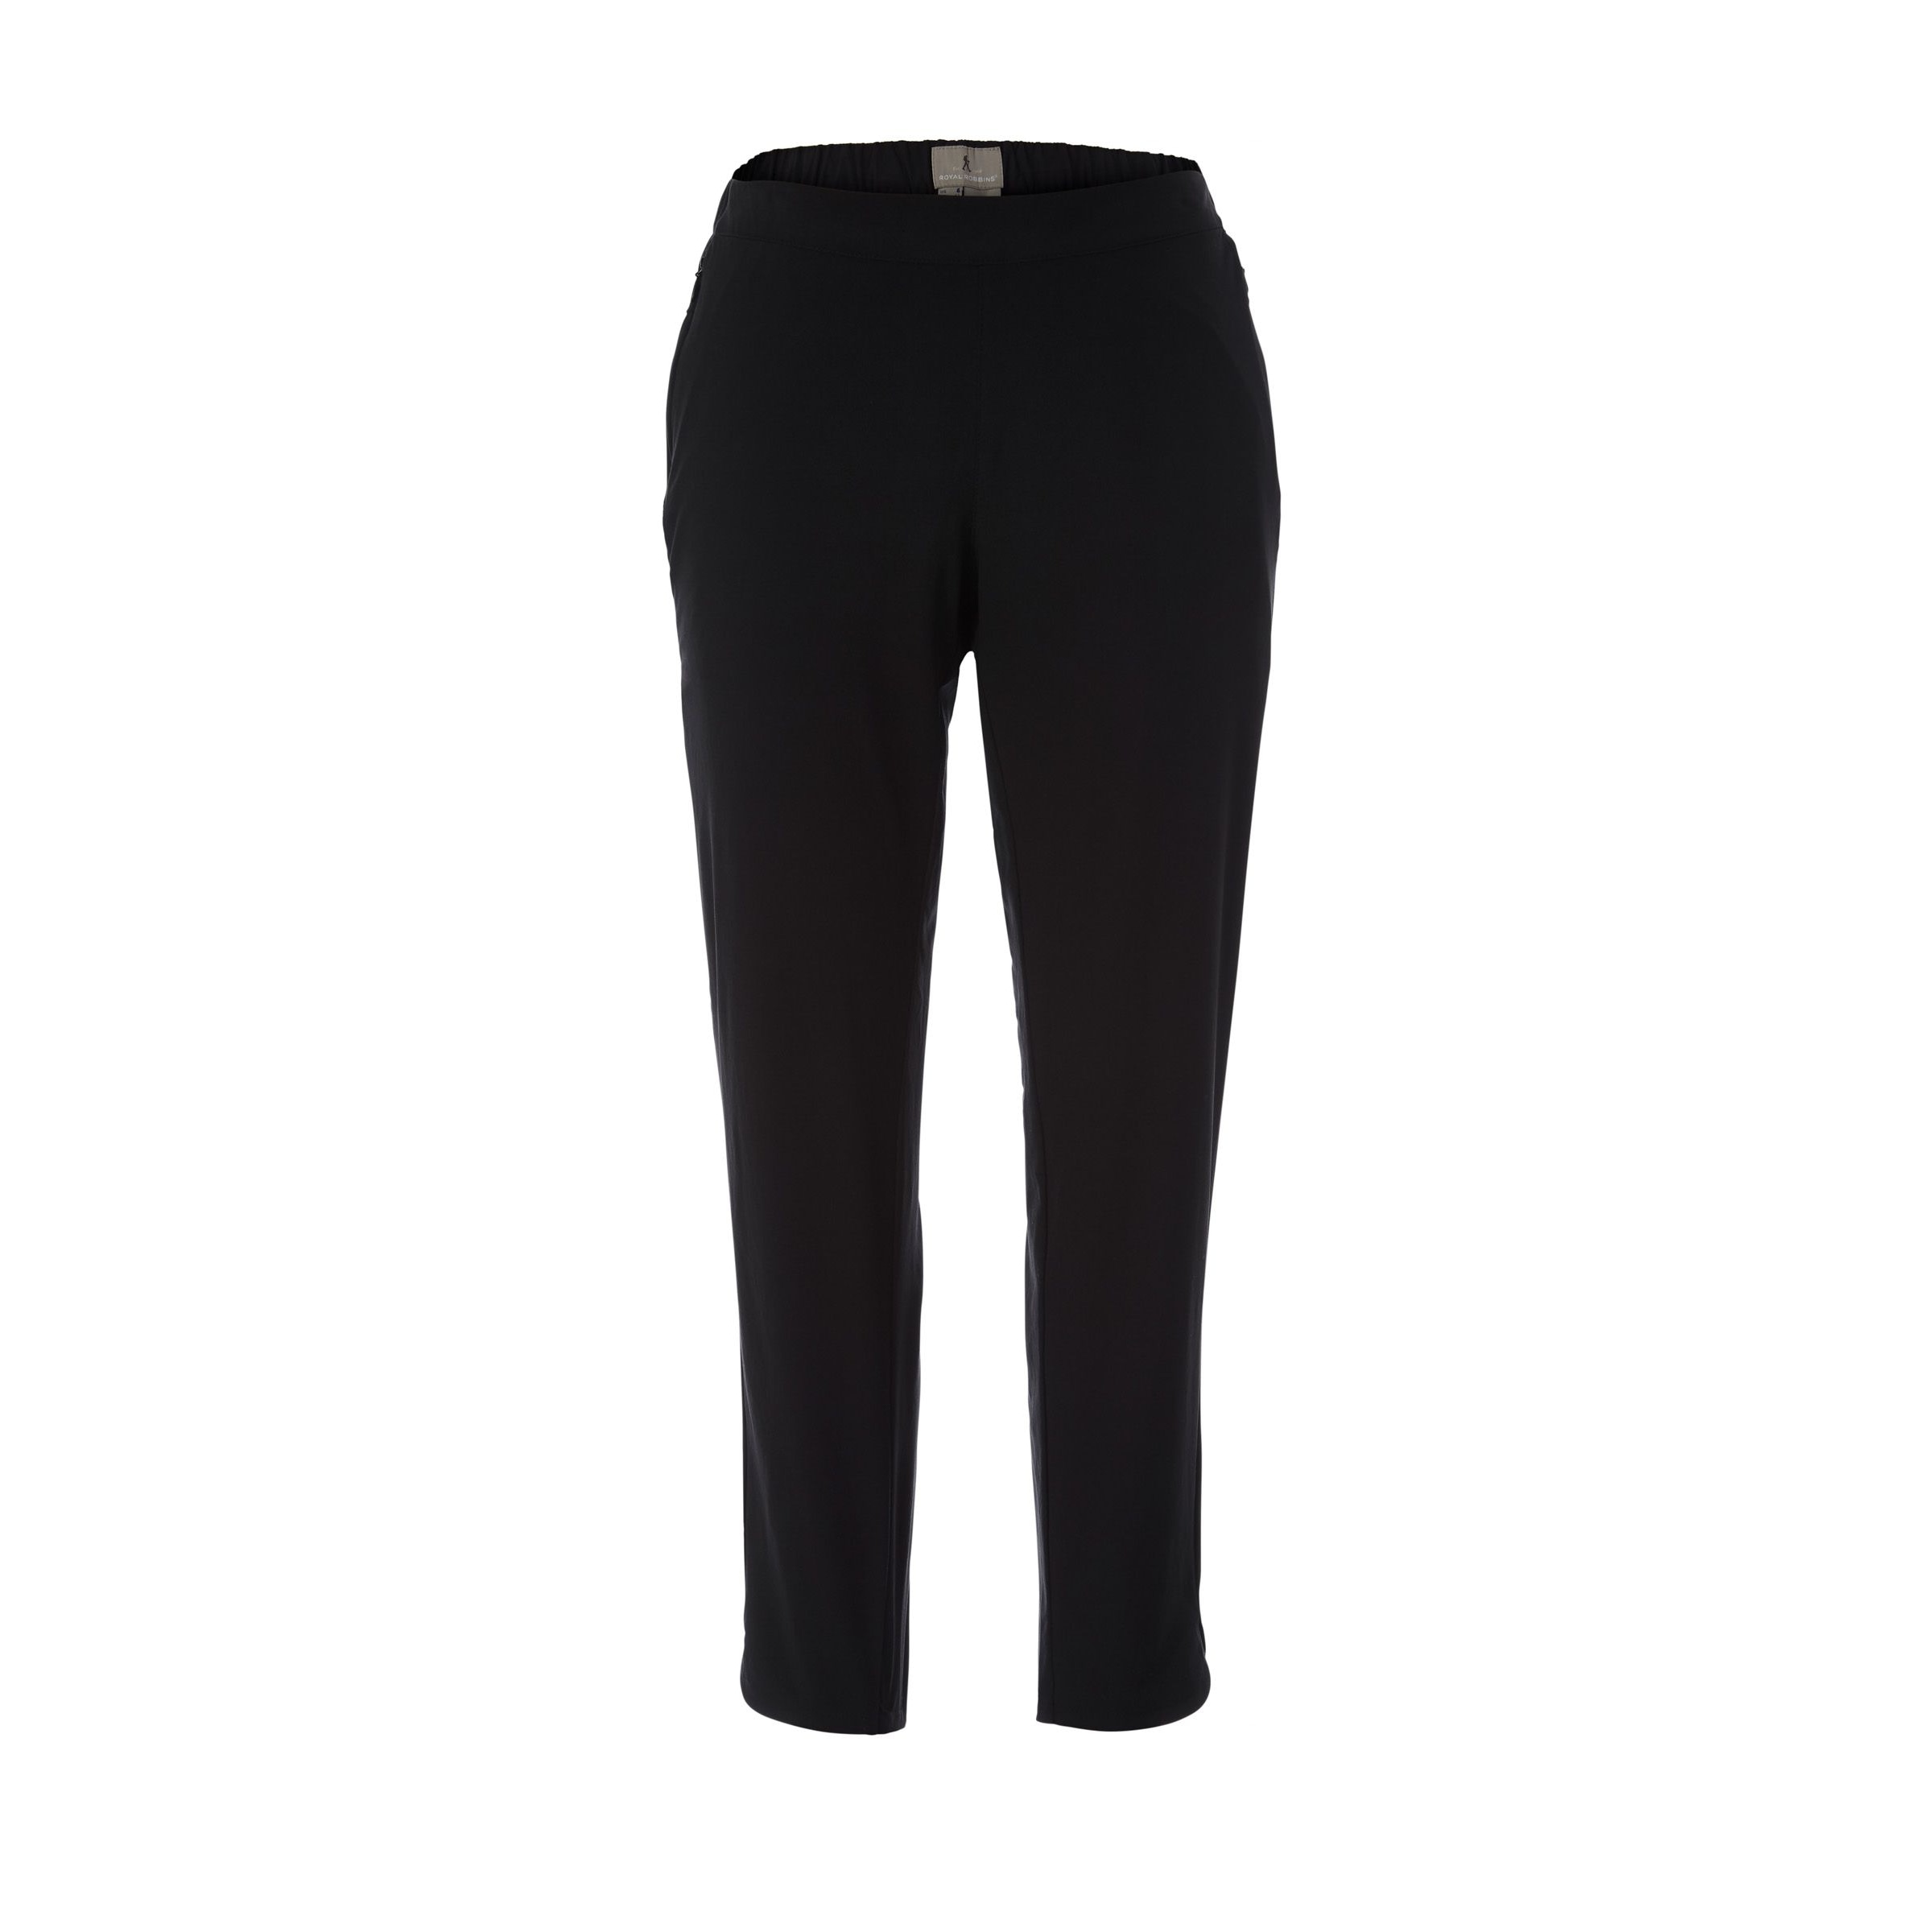 Spotless Traveler Pant - Women's